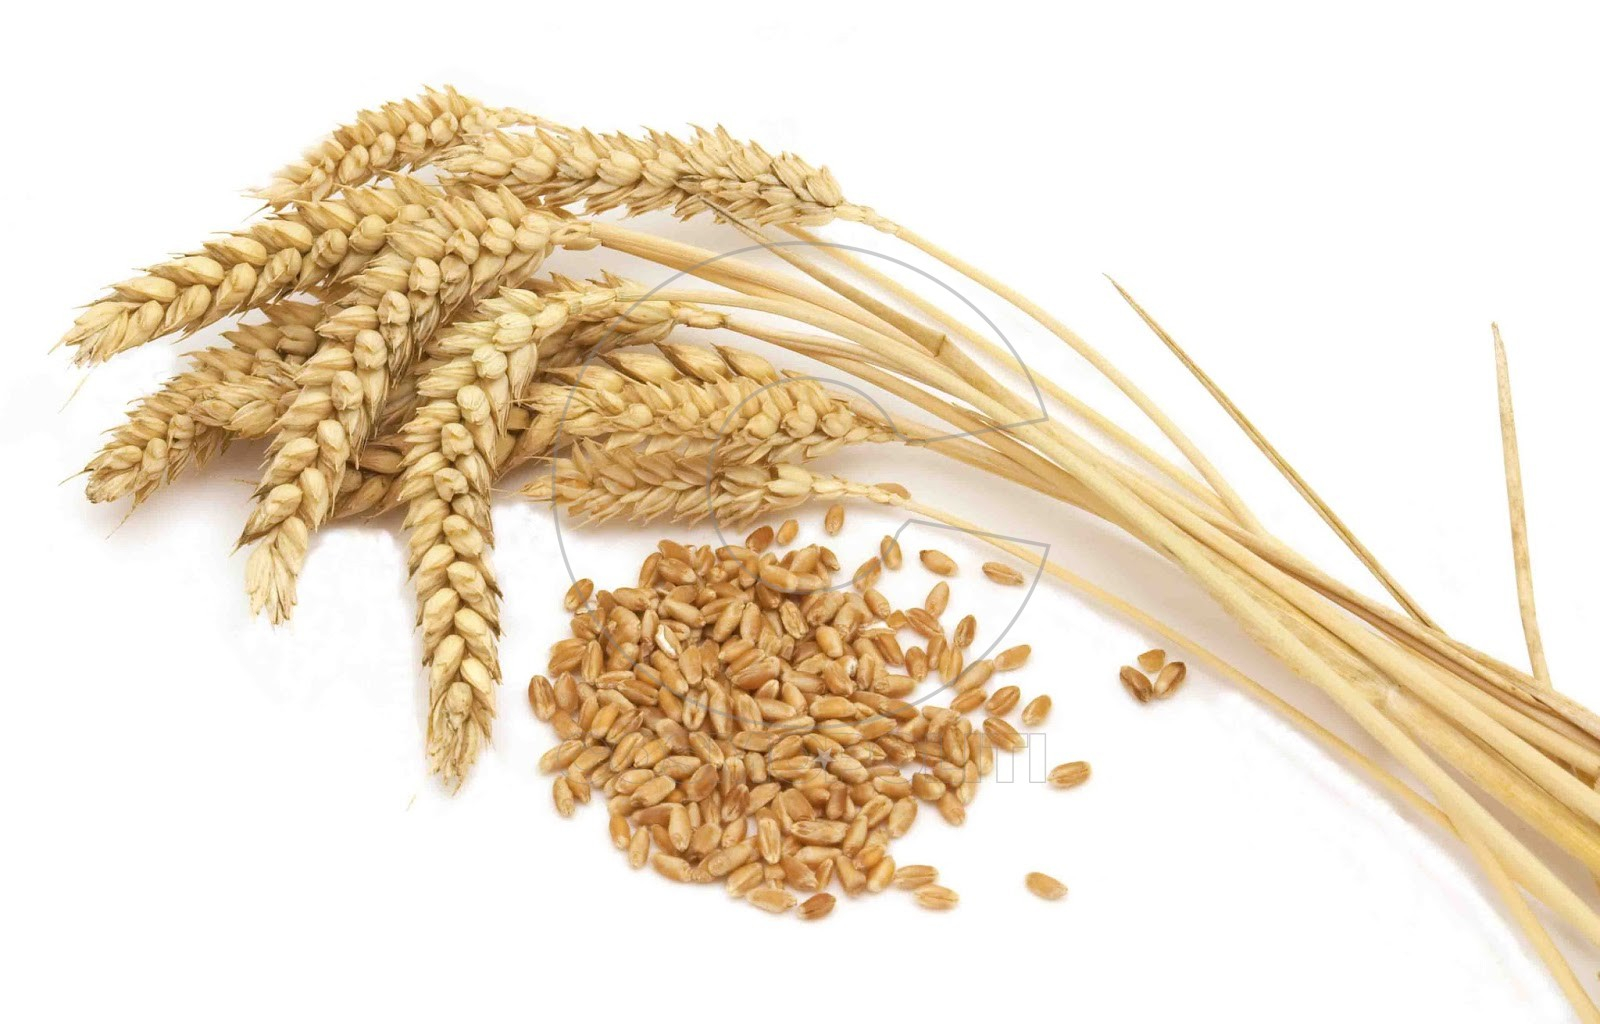 5776935-agriculture-wheat-golden-dried-fiels-crop-texture-background-herbalhome-6